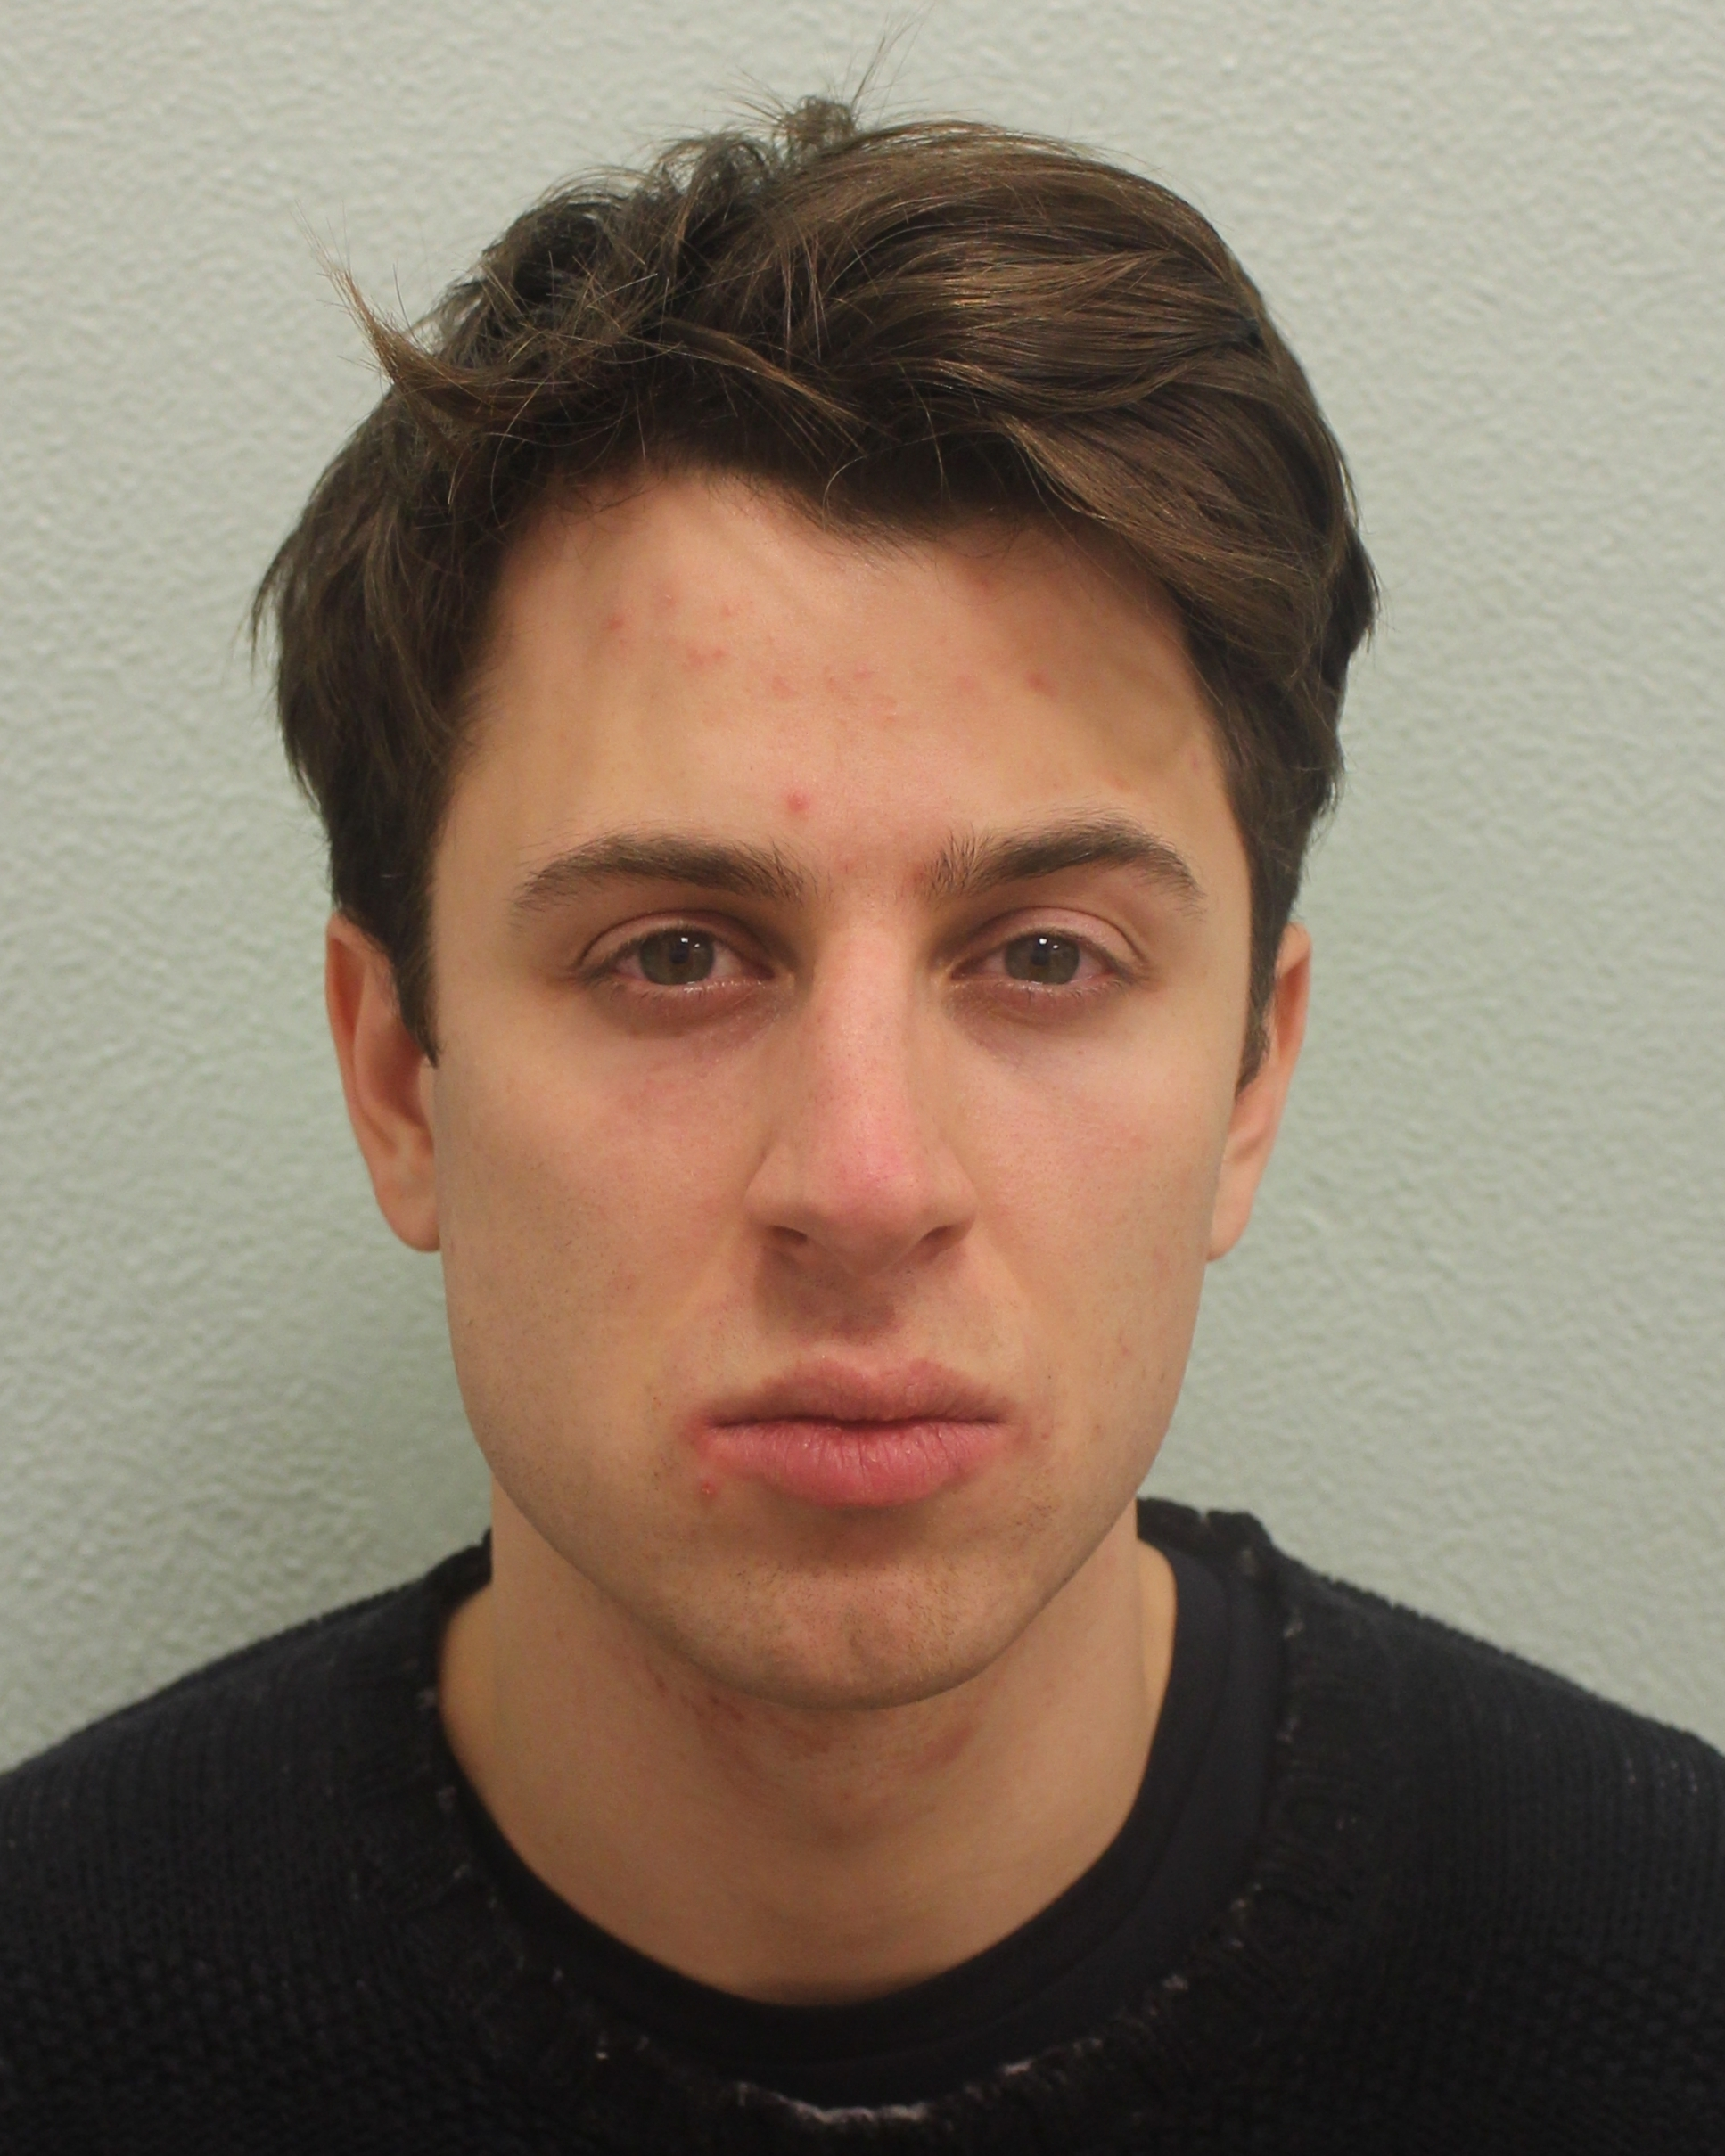 Edward Gabbai, from Borehamwood, has been jailed for 20 years